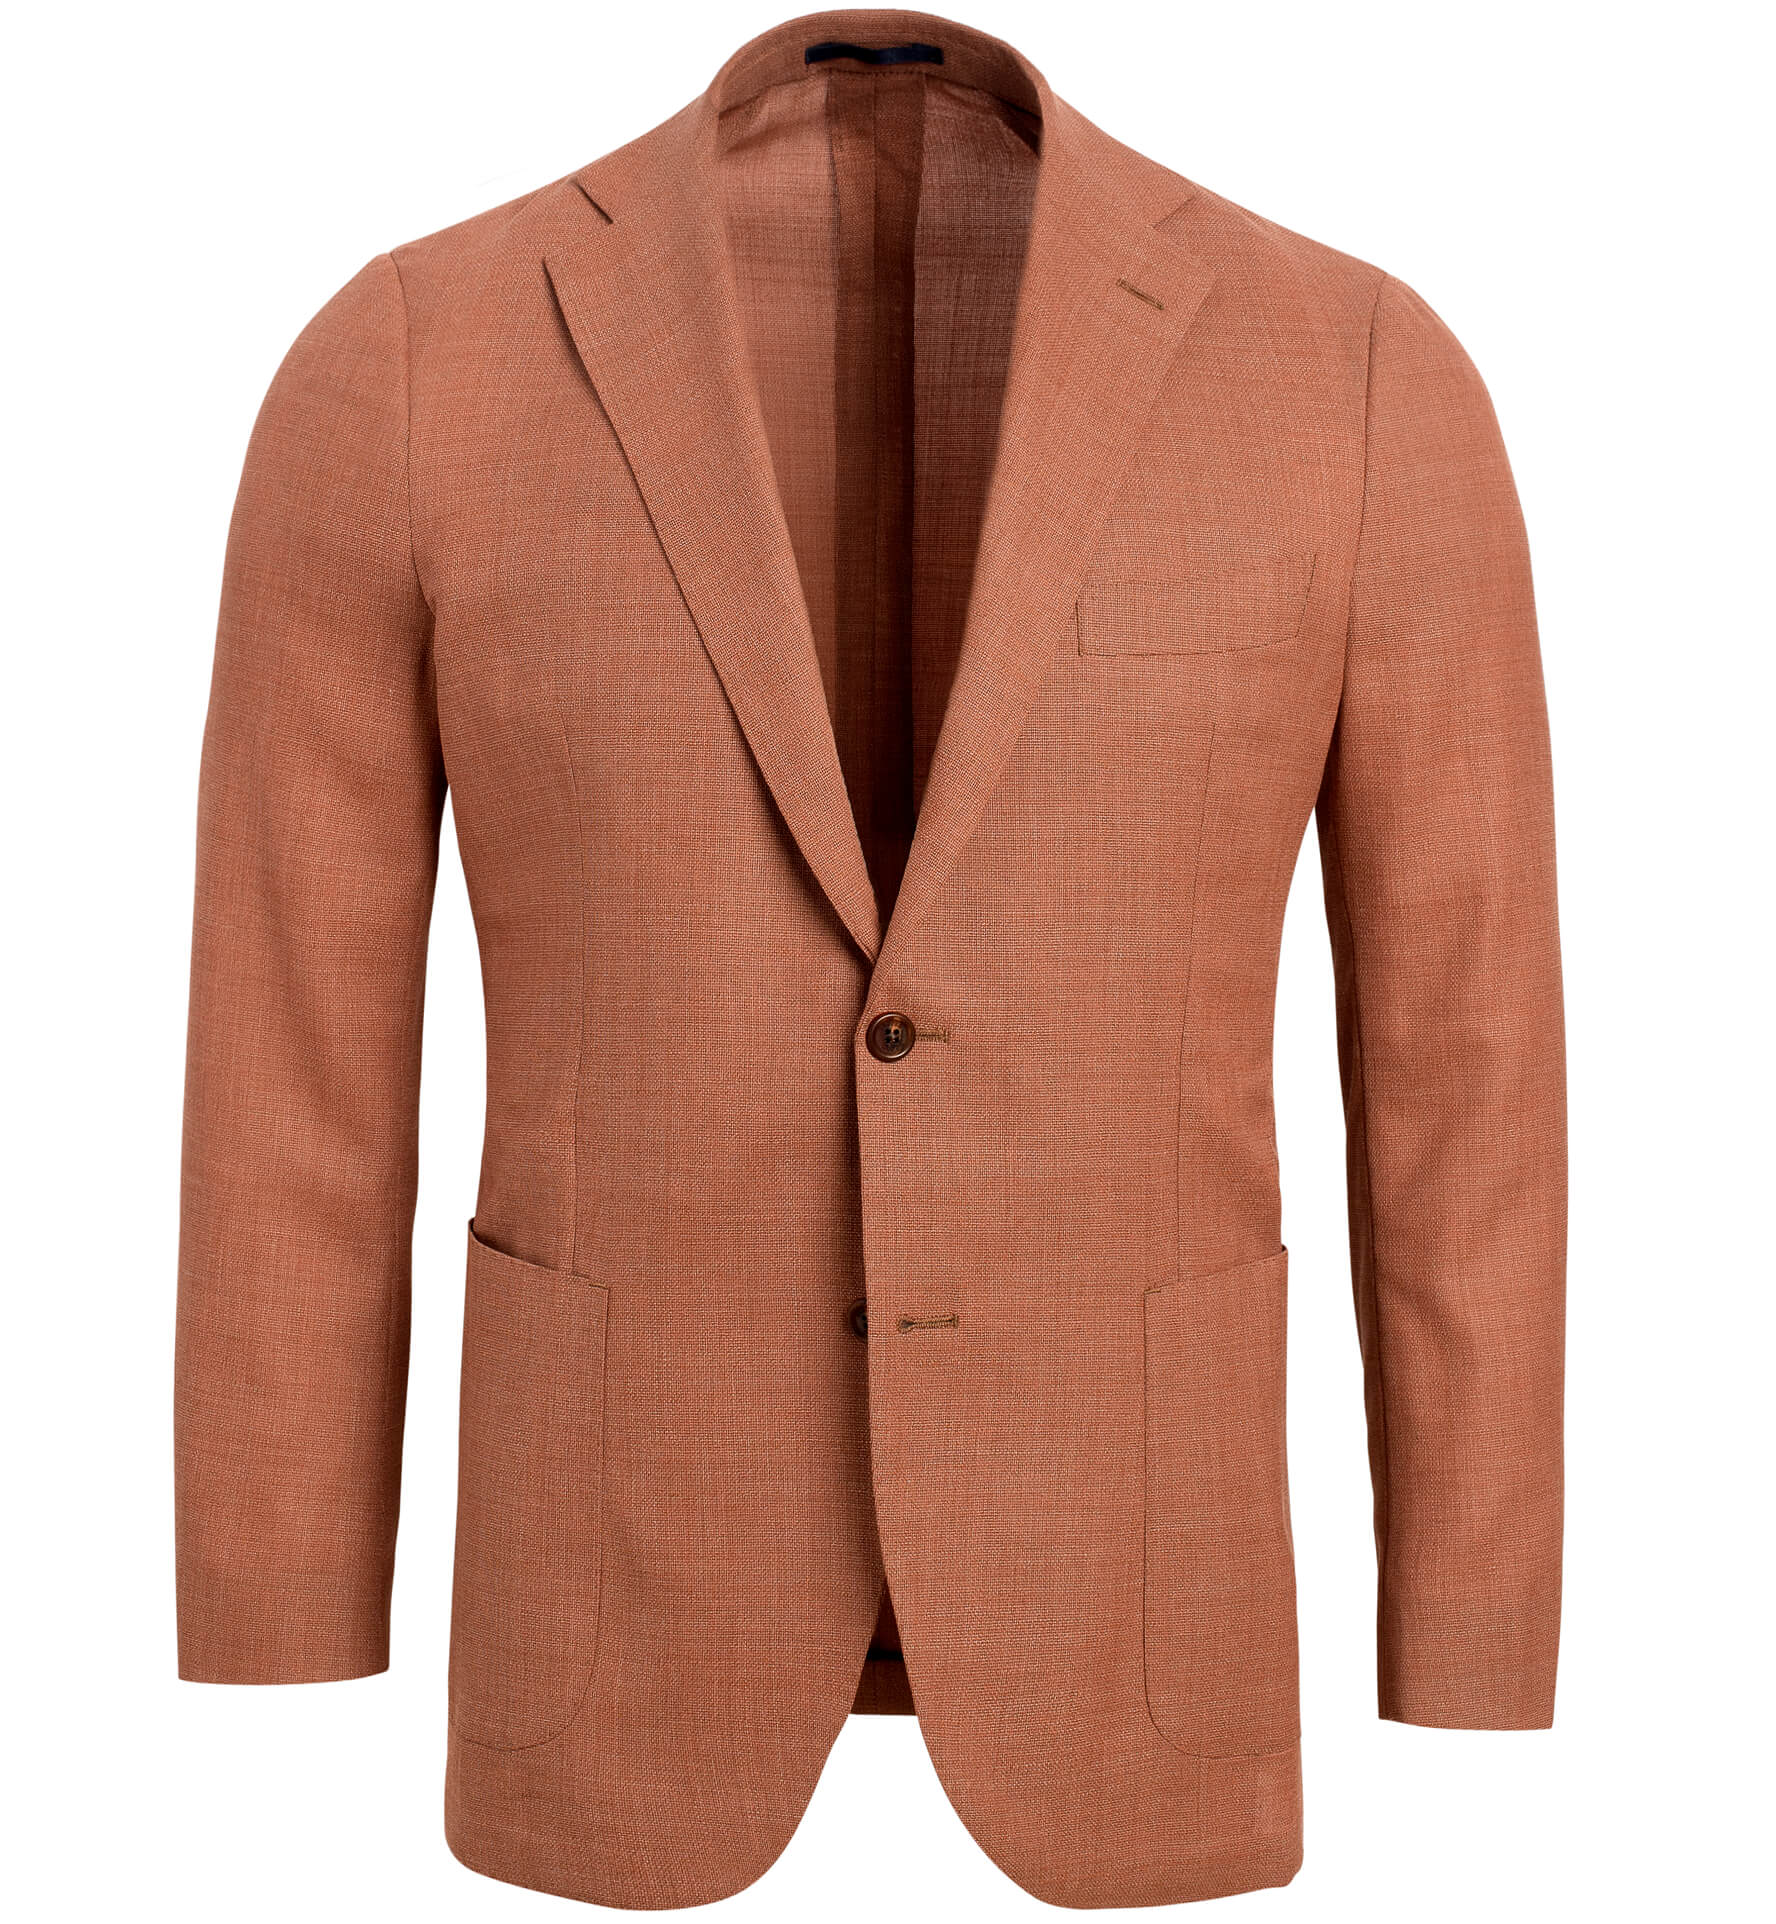 Zoom Image of Bedford Terra Cotta Performance Hopsack Jacket